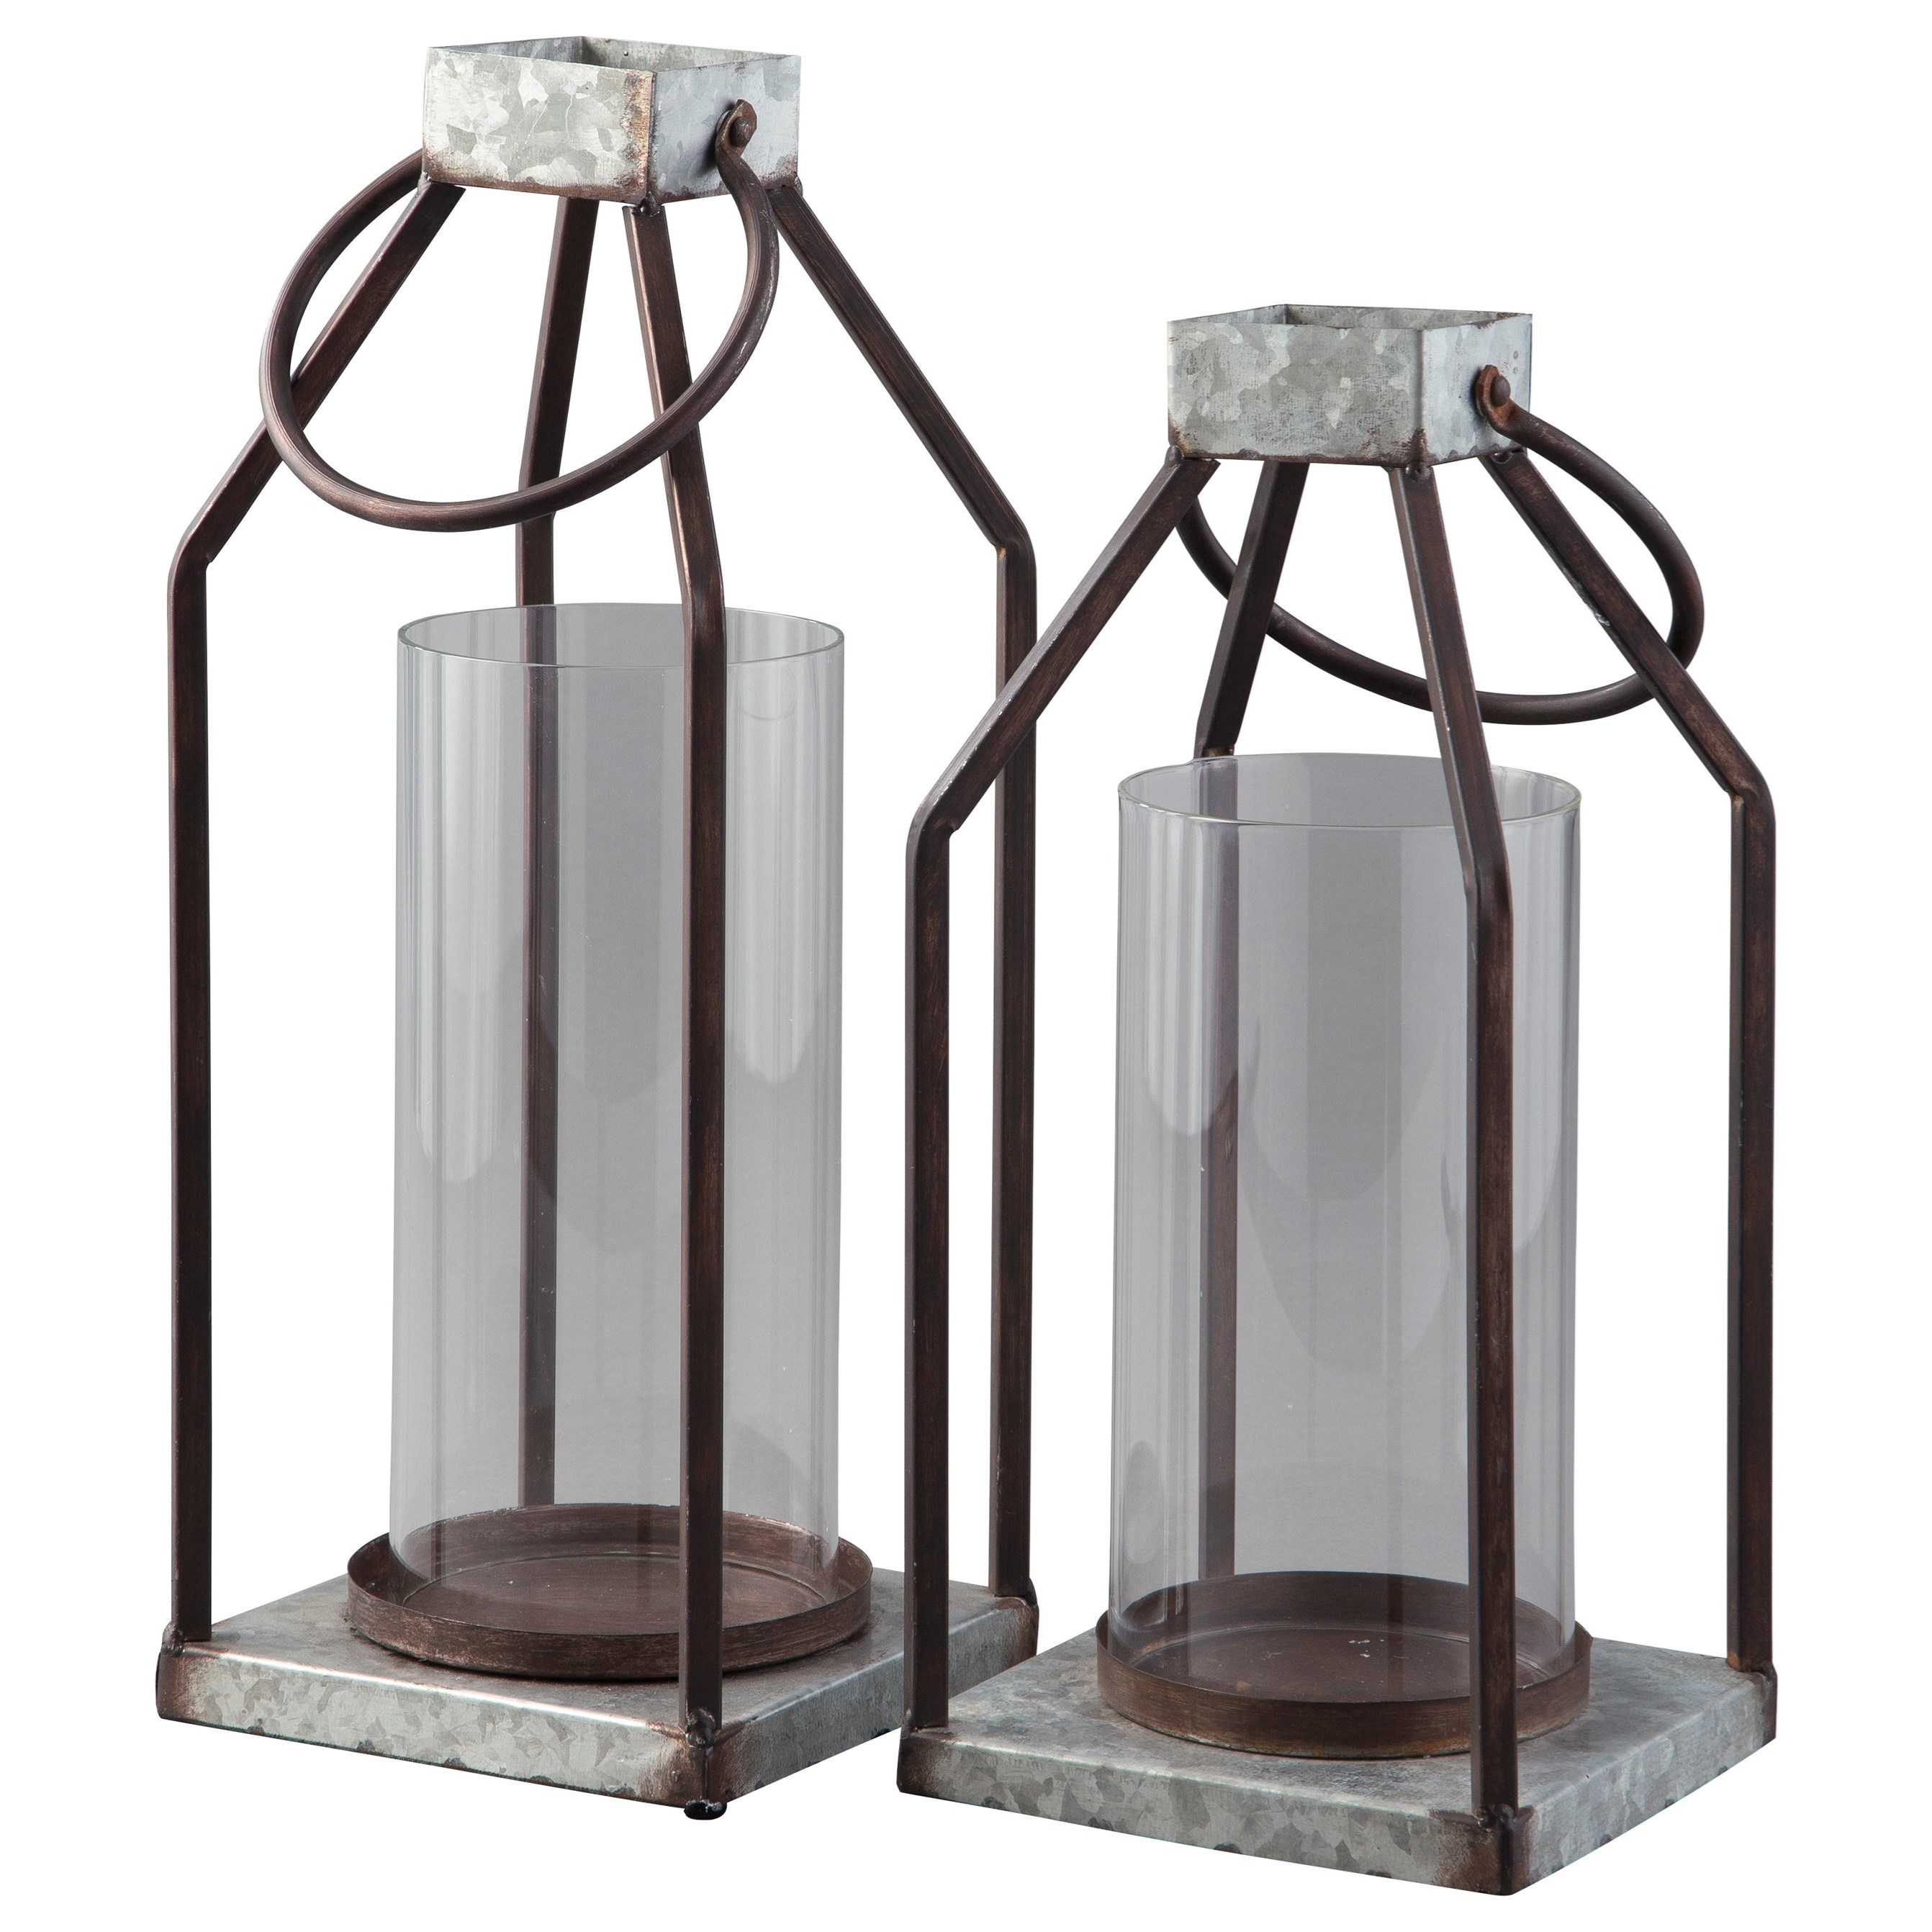 Accents Diedrick Gray/Black Lantern Set by Signature Design by Ashley at Catalog Outlet